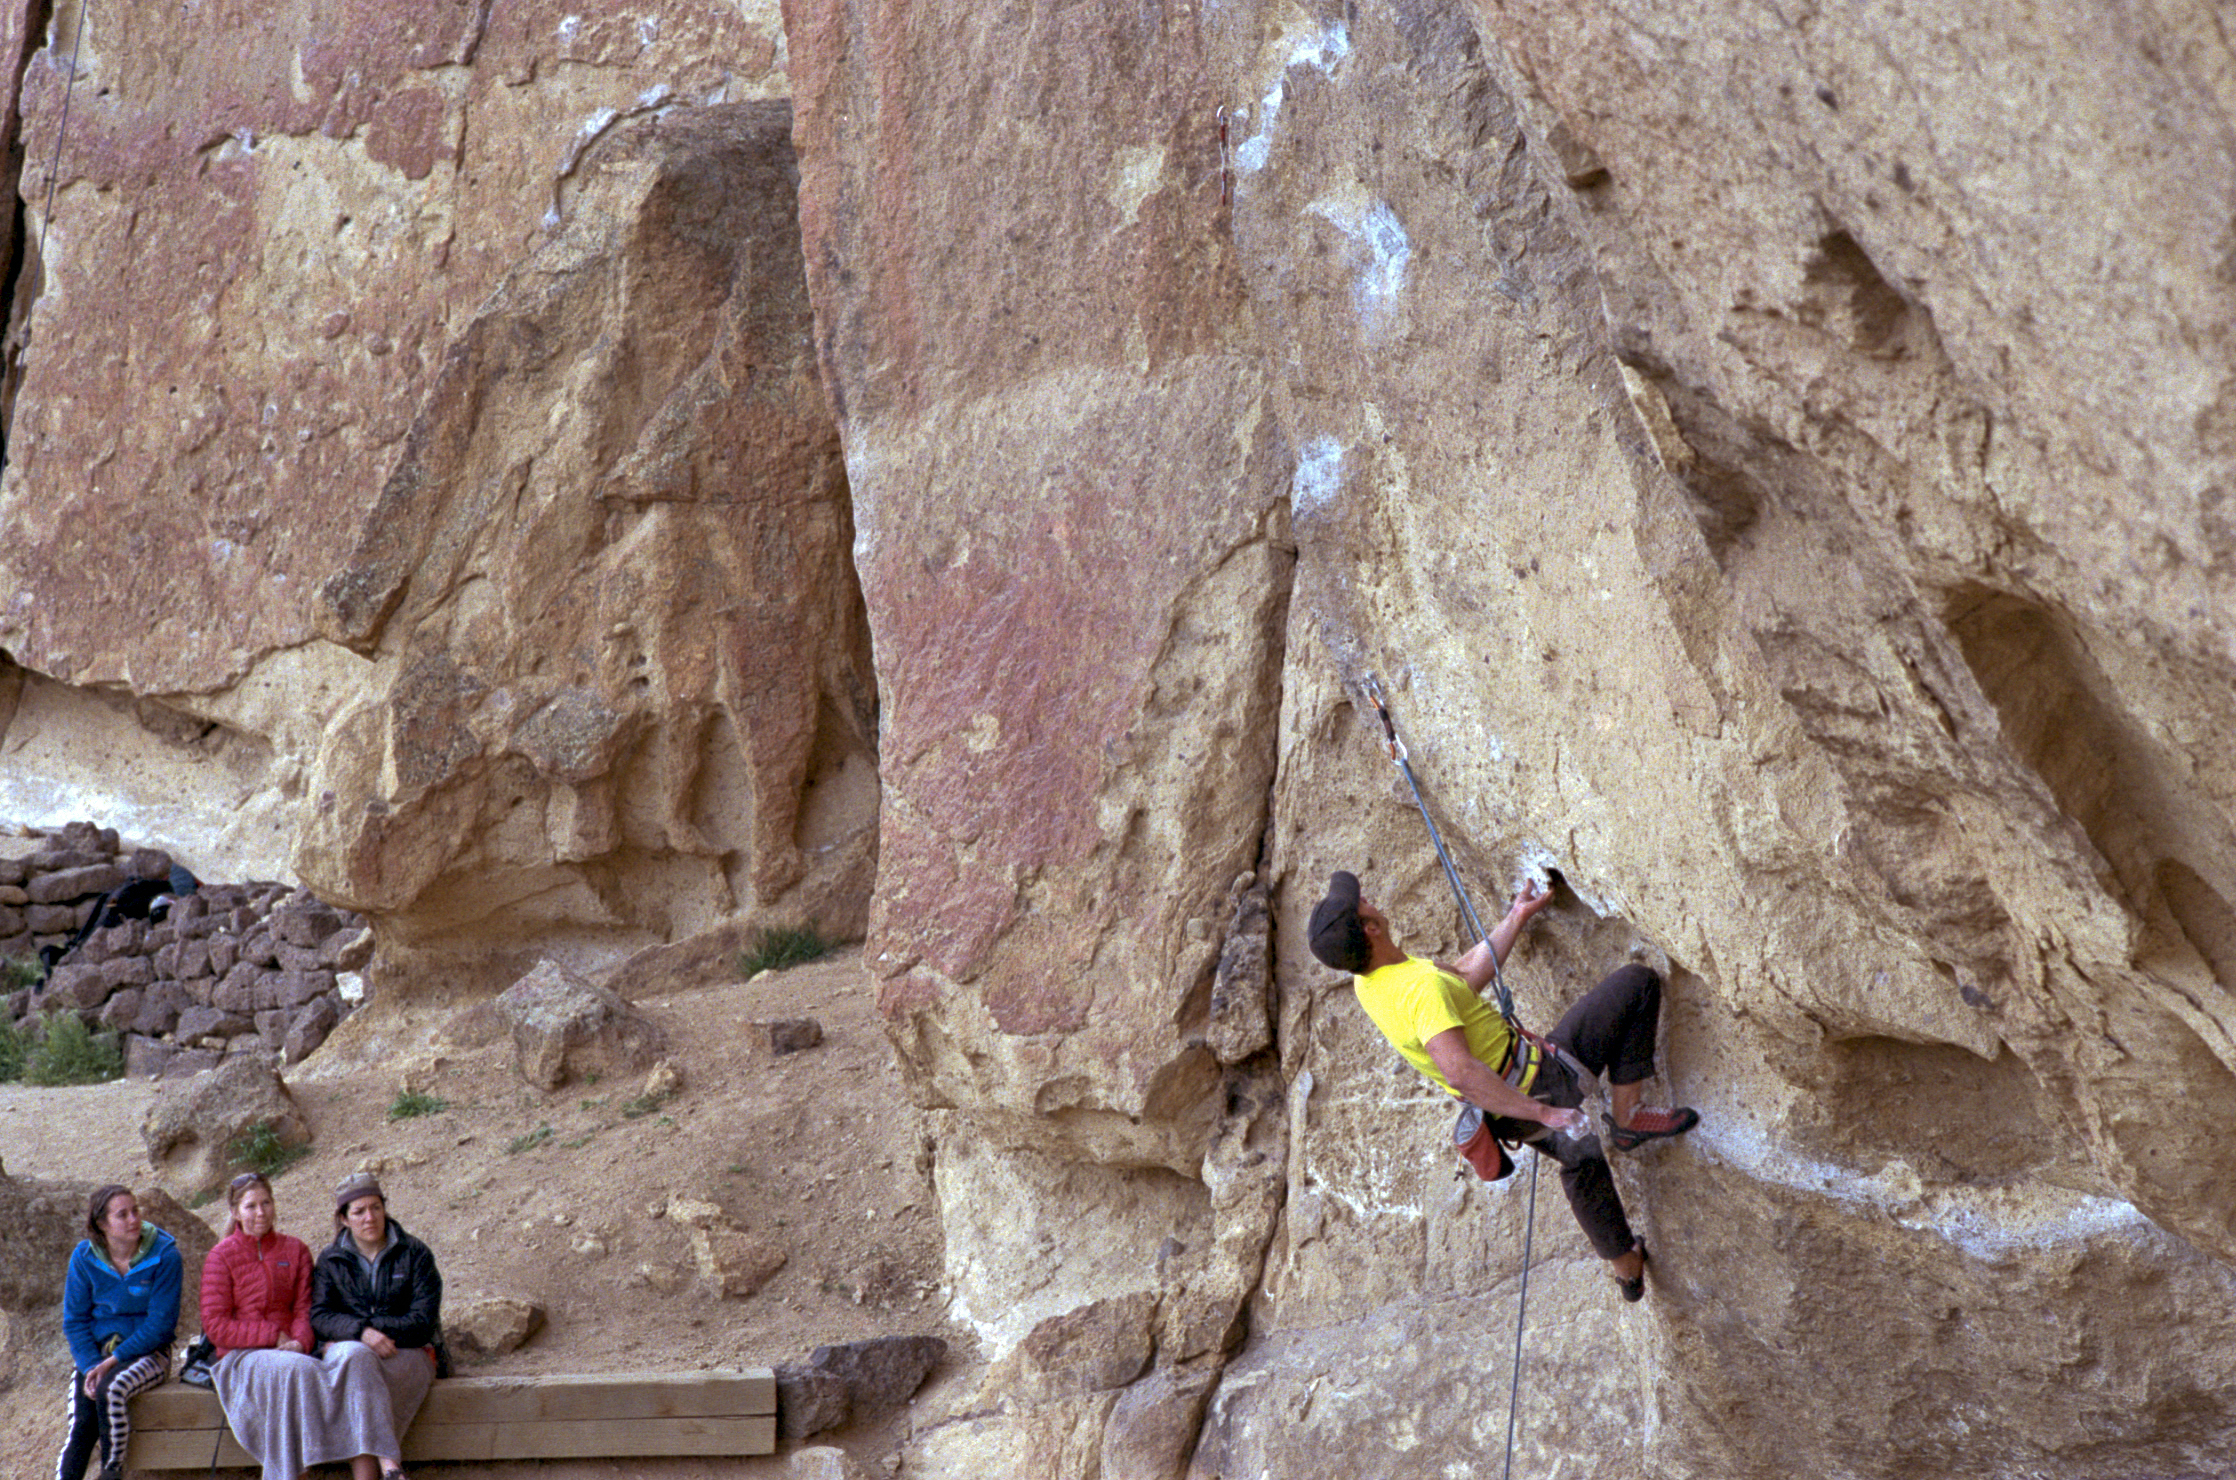 Ryan midway through Heresy, 5.11c at Smith Rock State Park